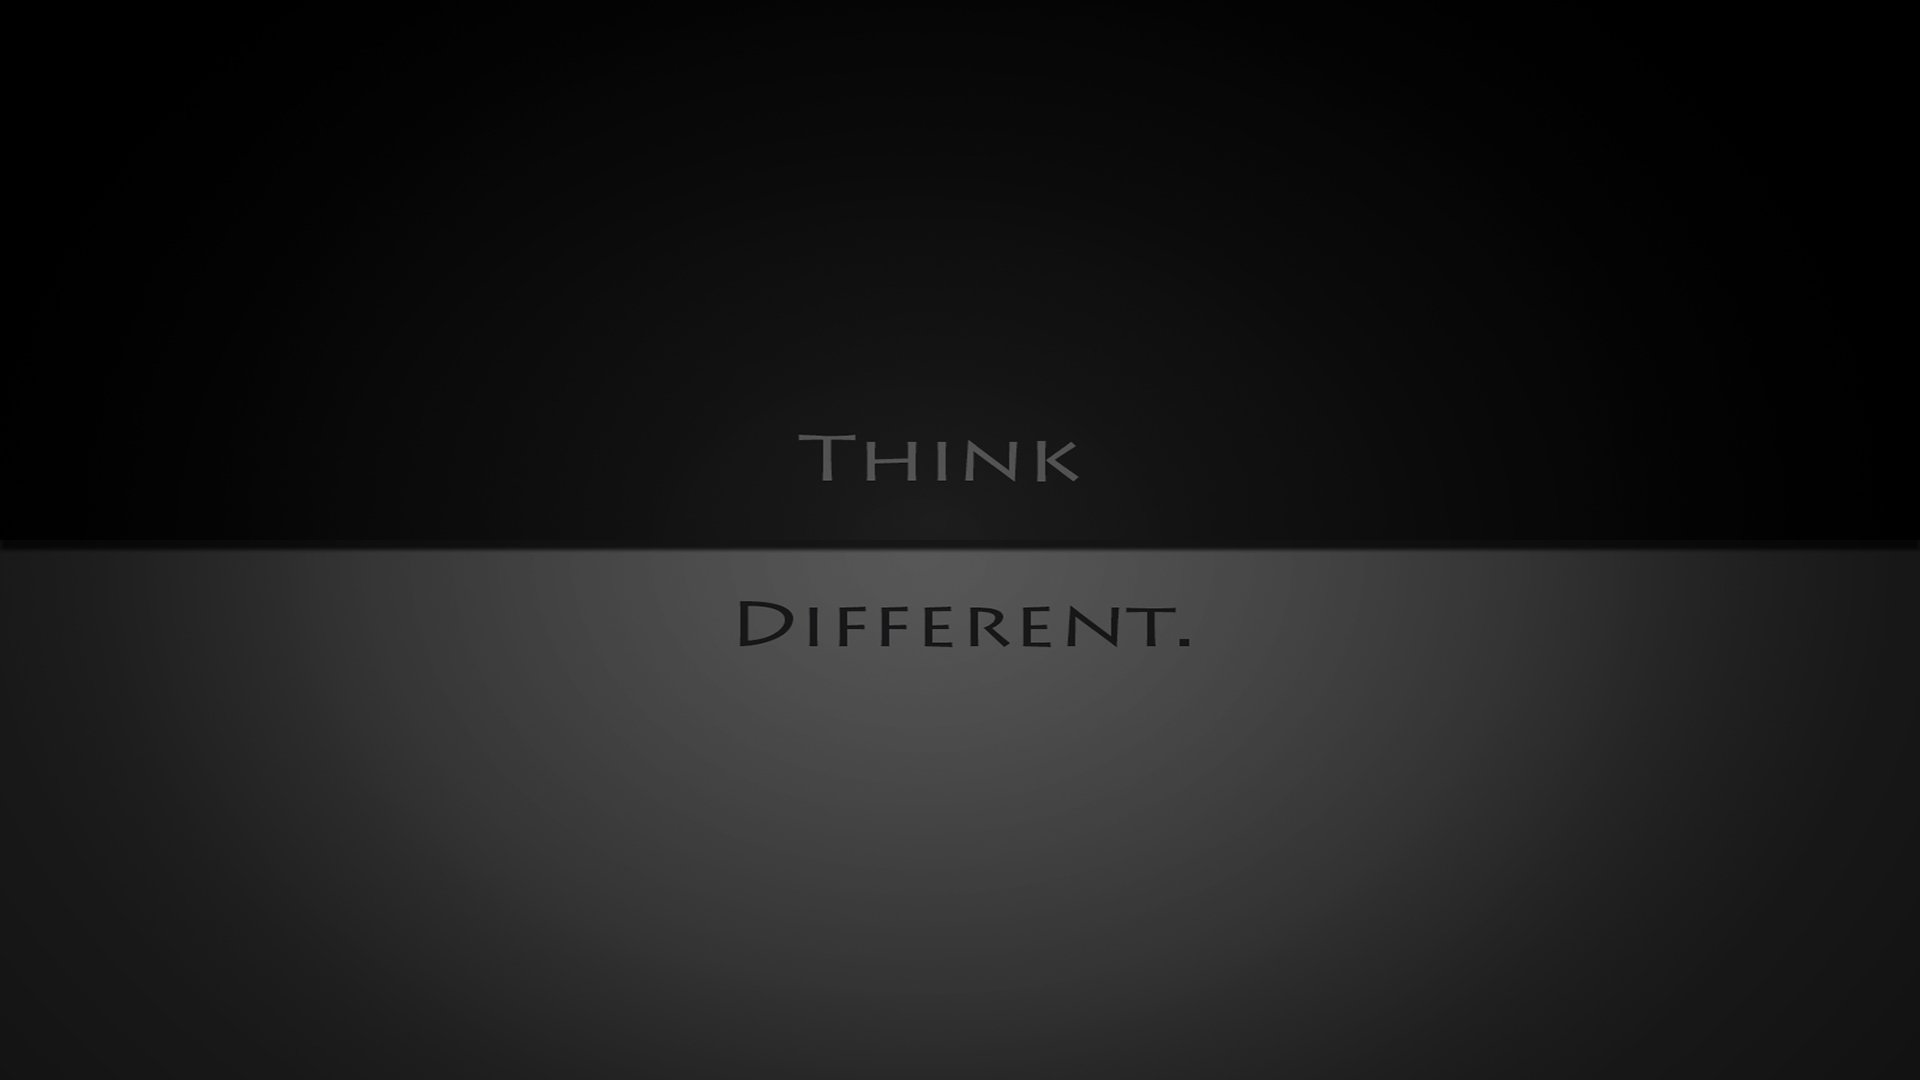 Think Different Hd Wallpaper